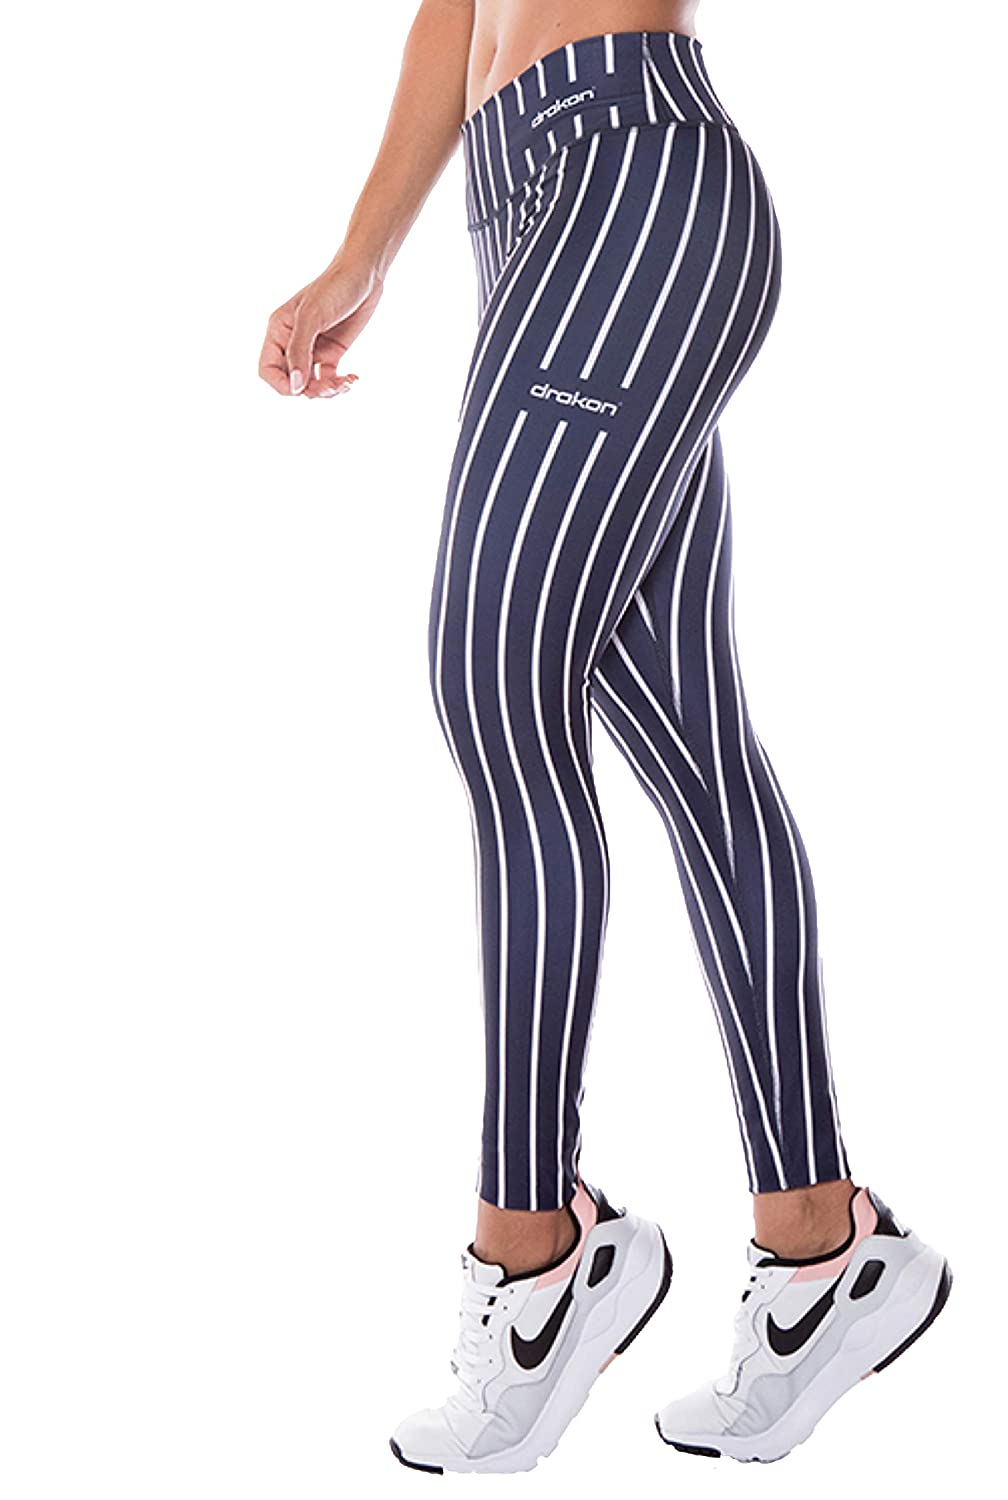 c0f9f1f079b3f8 Drakon Many Styles of Crossfit Leggings Women Colombian Yoga Pants  Compression Tights (Base) at Amazon Women's Clothing store: